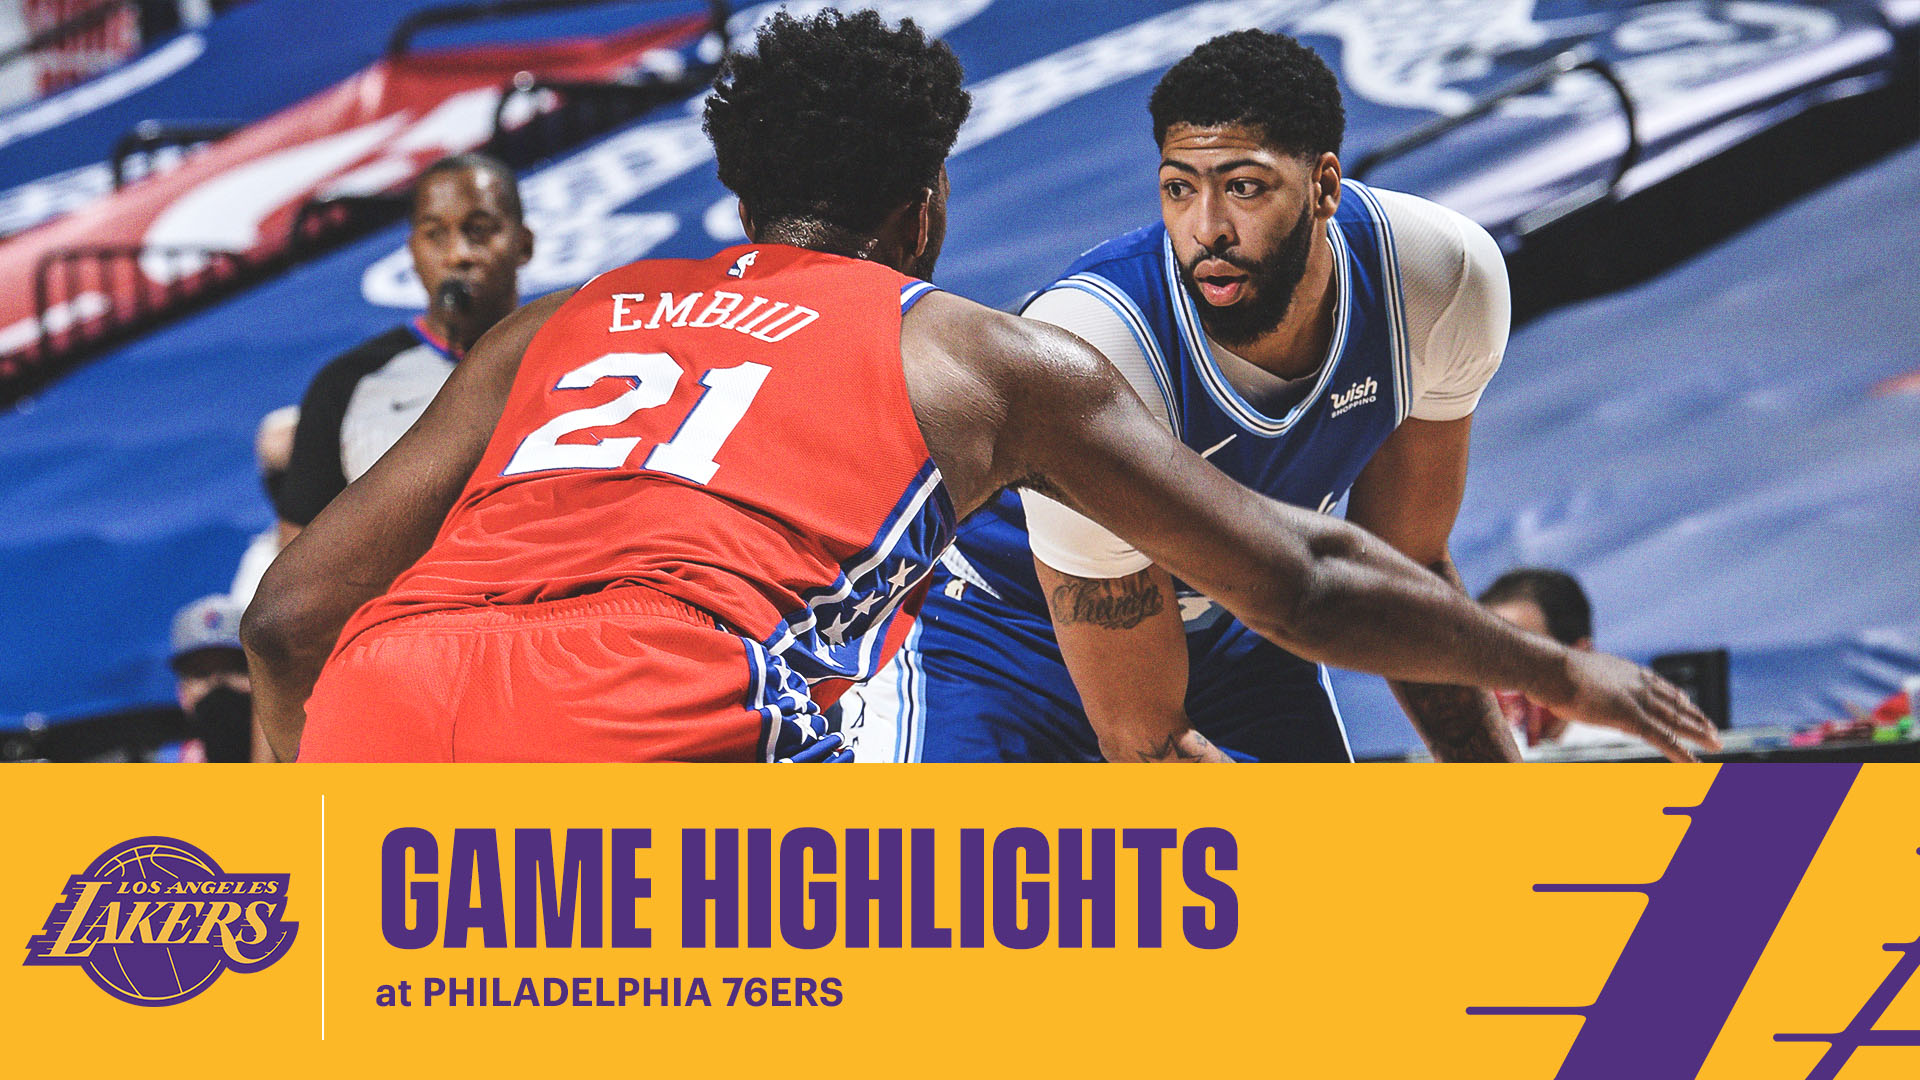 HIGHLIGHTS | Anthony Davis (23 pts, 8 reb, 2 blk) vs Philadelphia 76ers